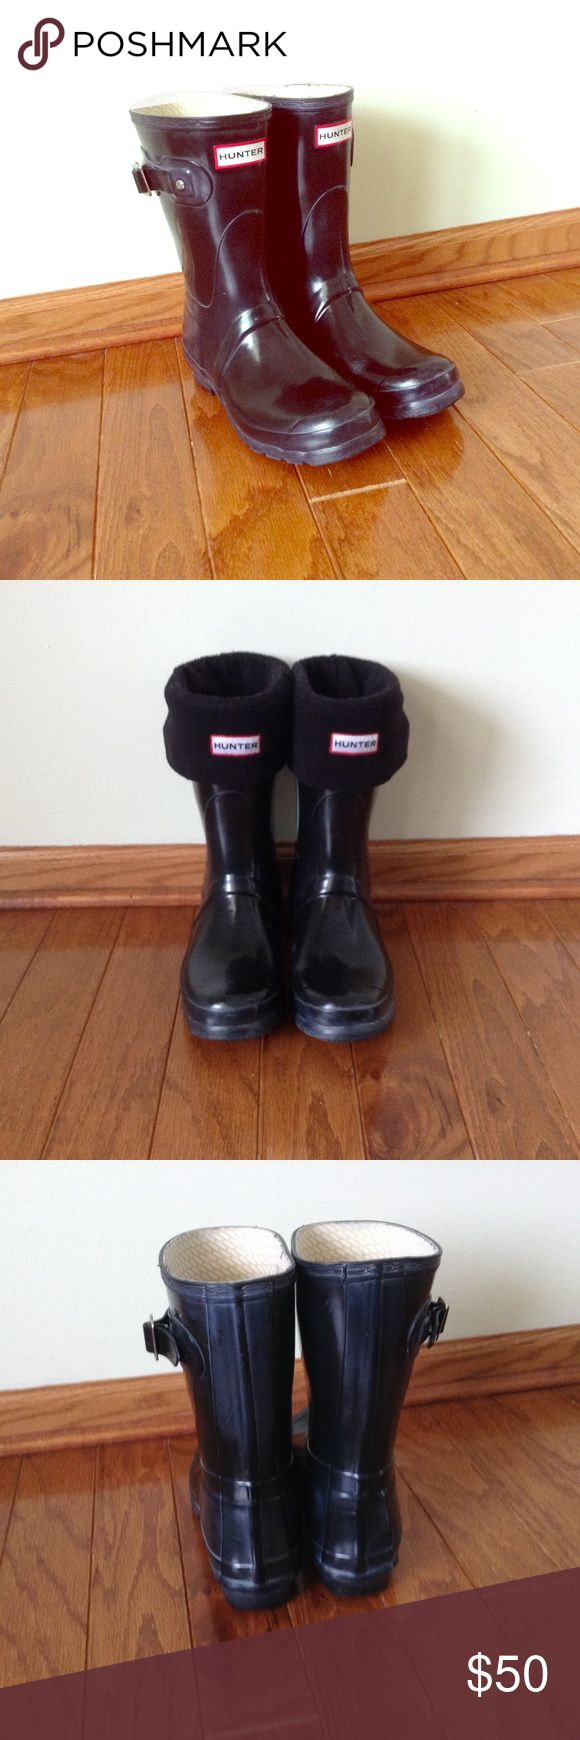 Hunter Short Boots (boot sock included) Classic Hunter boots in glossy black. Can be worn with or without boot sock (2nd pic is with boot socks on). Hunter boots are waterproof and will keep your feet dry in rain or snow. Hunter Boots Shoes Winter & Rain Boots